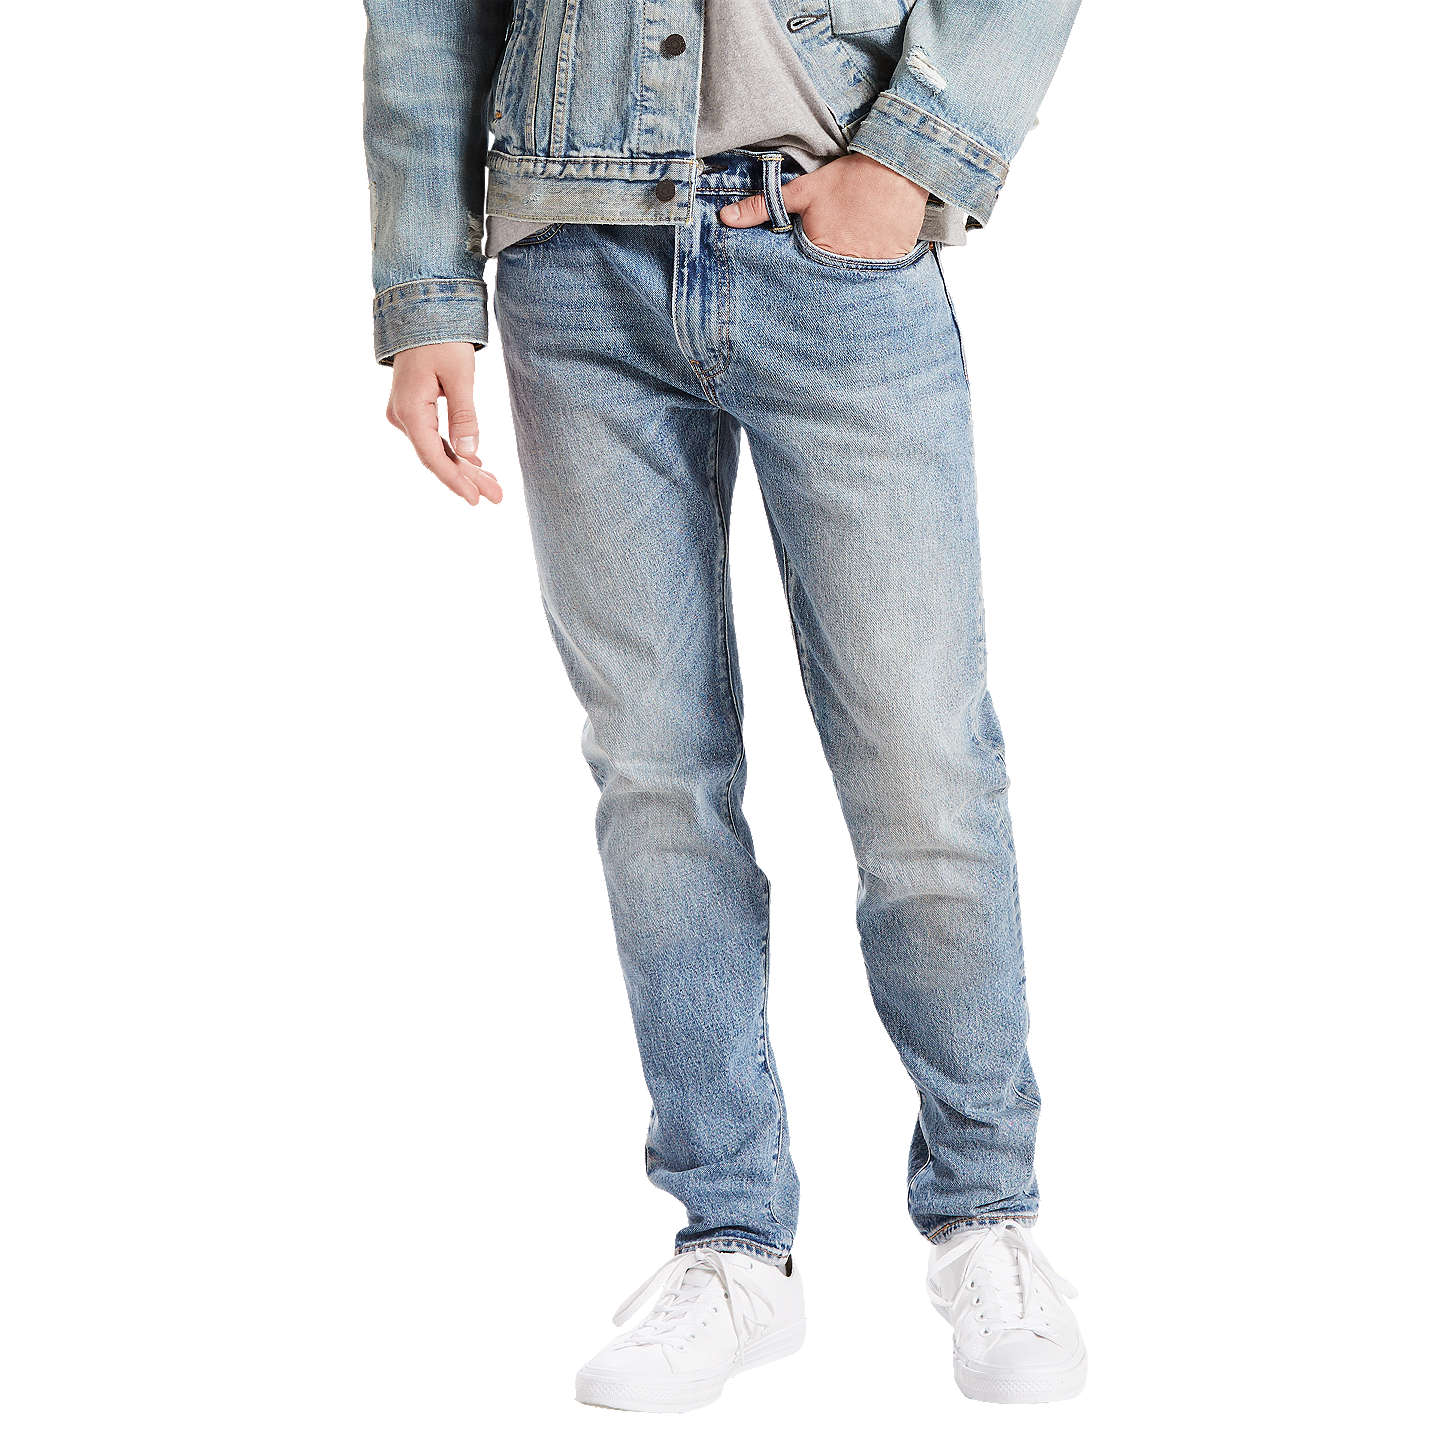 TROUSERS - 3/4-length trousers Levi's Footlocker Finishline For Sale Low Cost All Seasons Available Outlet With Paypal Order Online U5LDqC